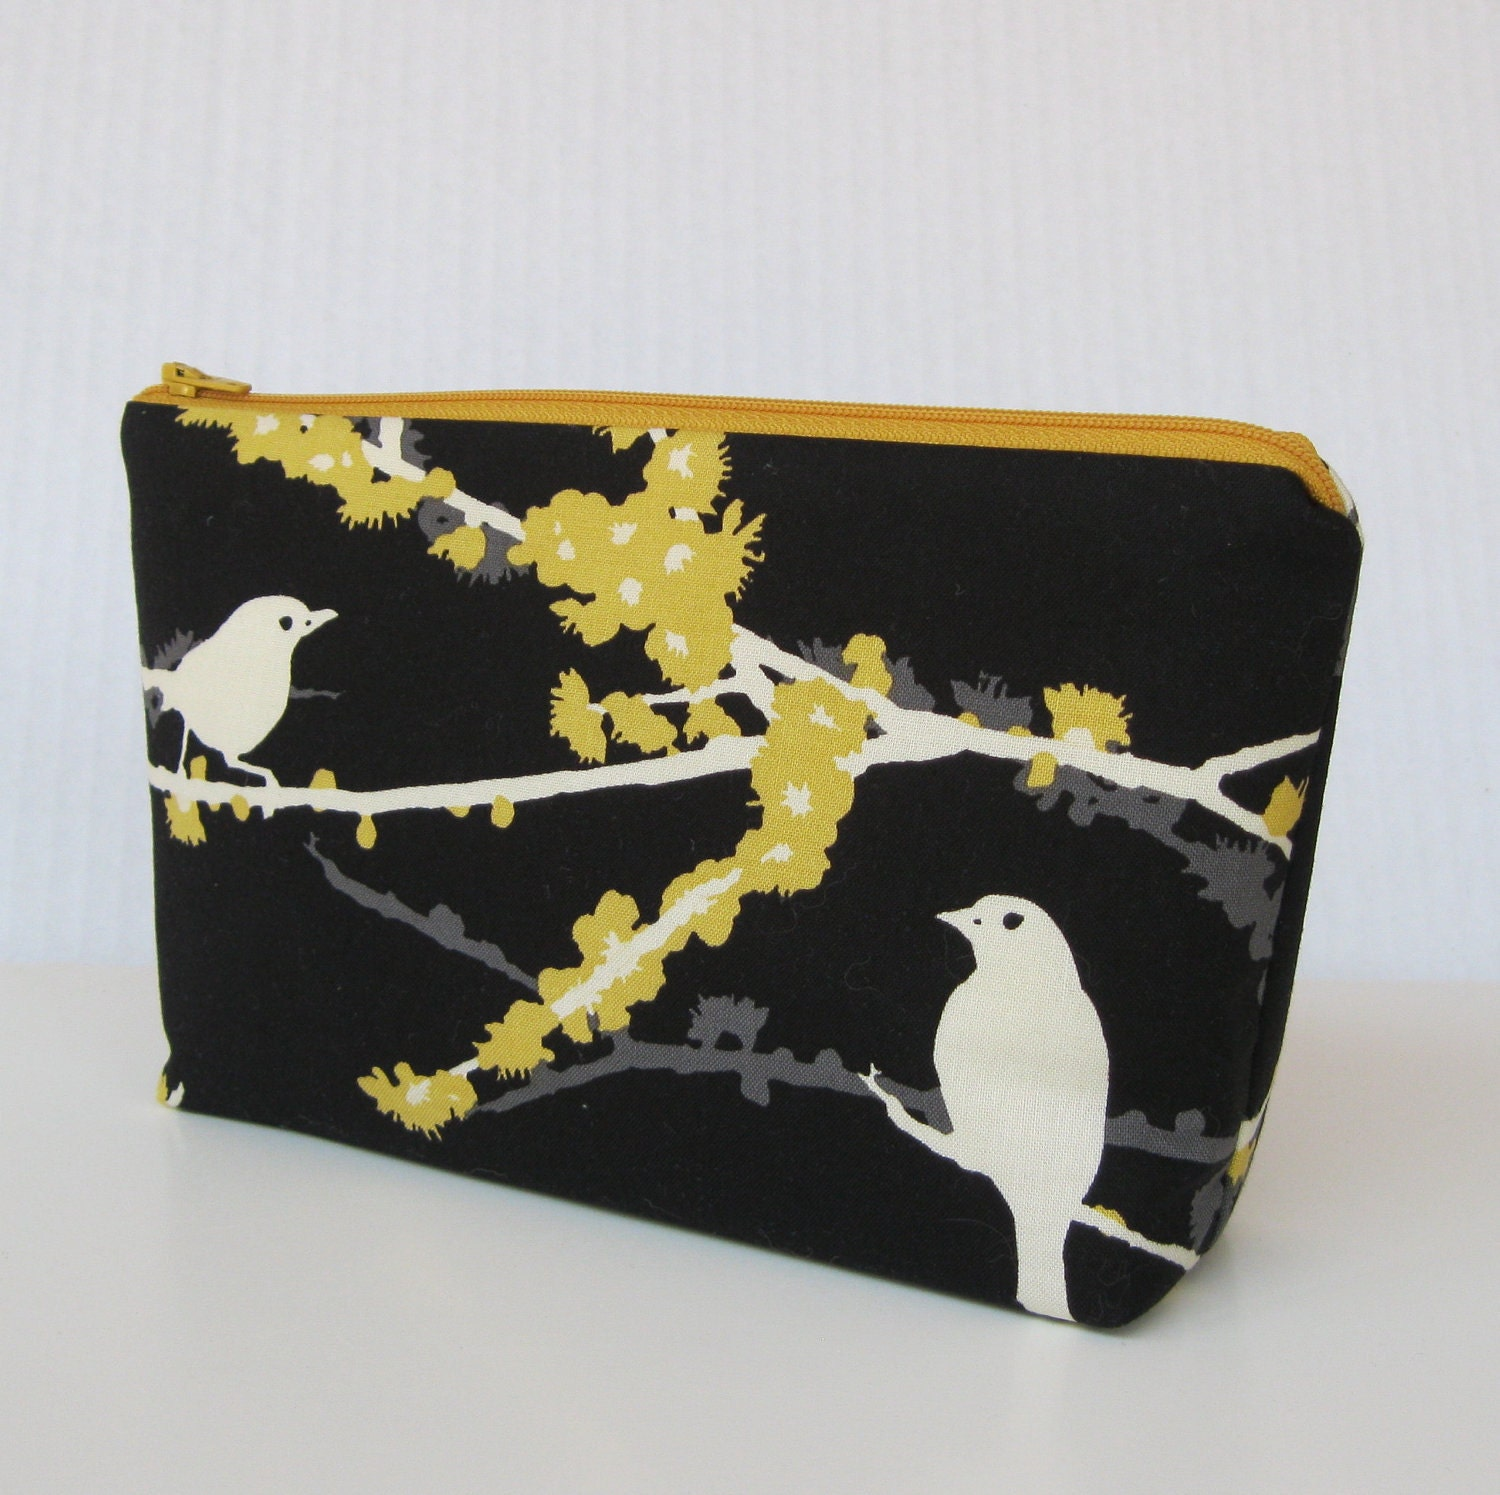 Fabric Zippered Pouch Clutch Bag - Sparrows in Cavern - Aviary Collection - READY TO SHIP